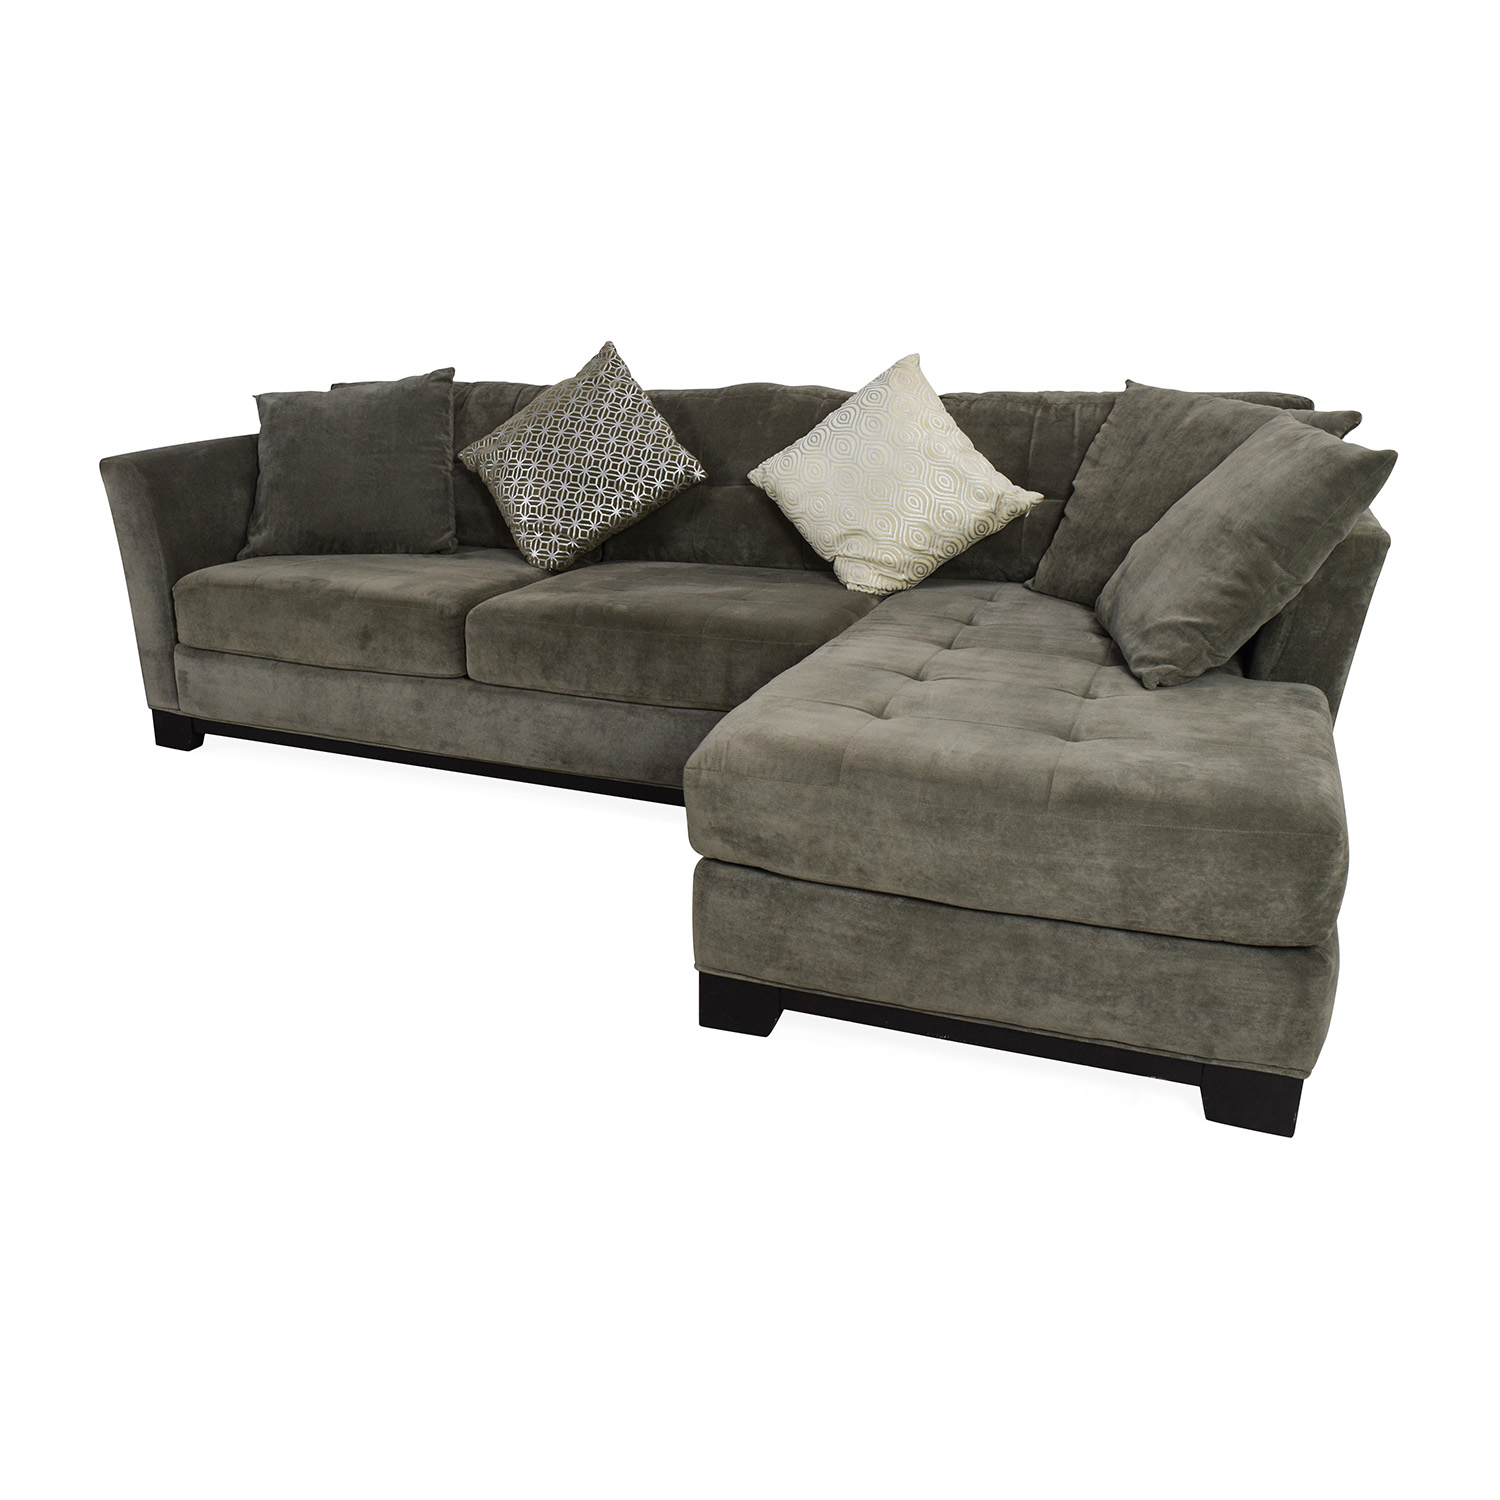 Gray sectional sofa with chaise hereo sofa for Gray microfiber sectional sofa with chaise